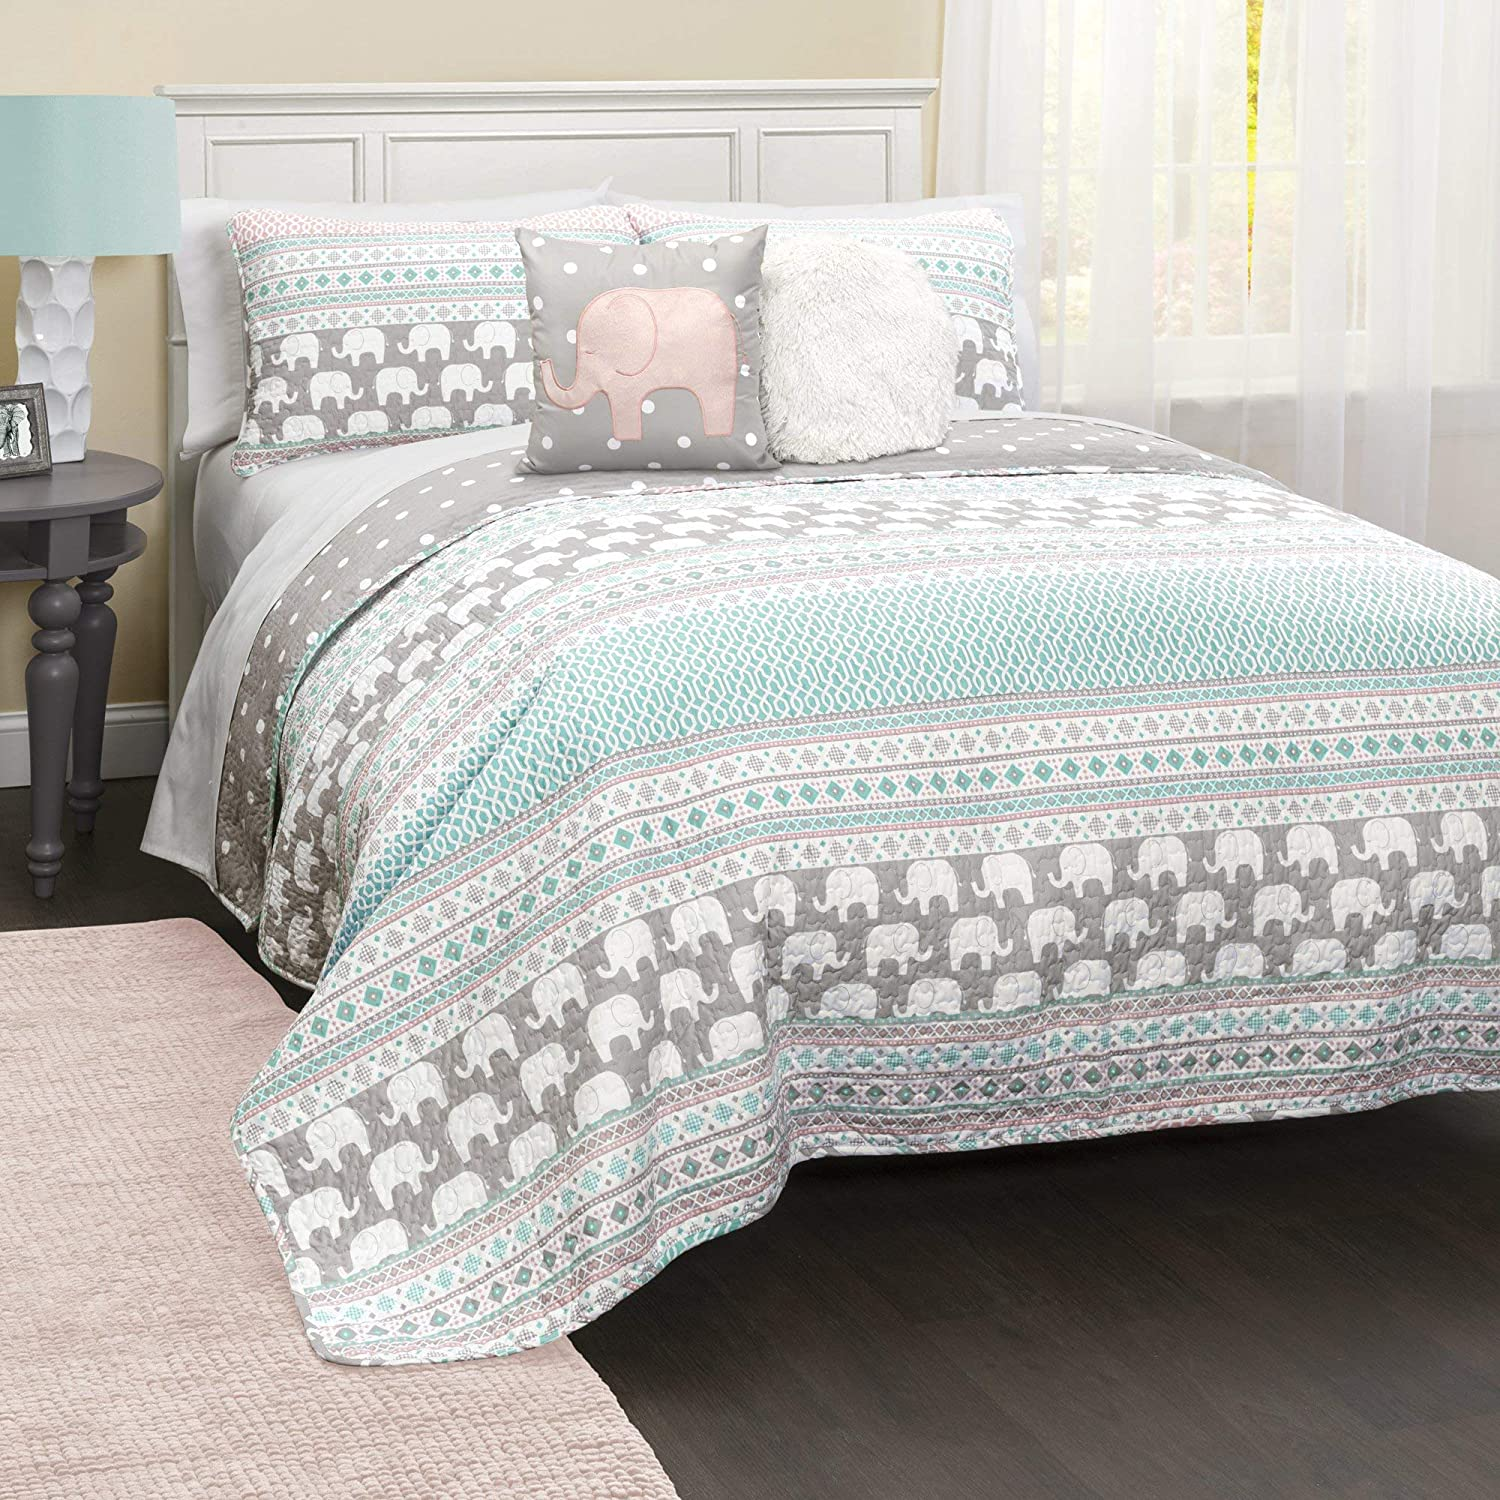 Lush Decor Elephant Striped Quilt Reversible 5 Piece Bedding Set Full/Queen, Turquoise & Pink